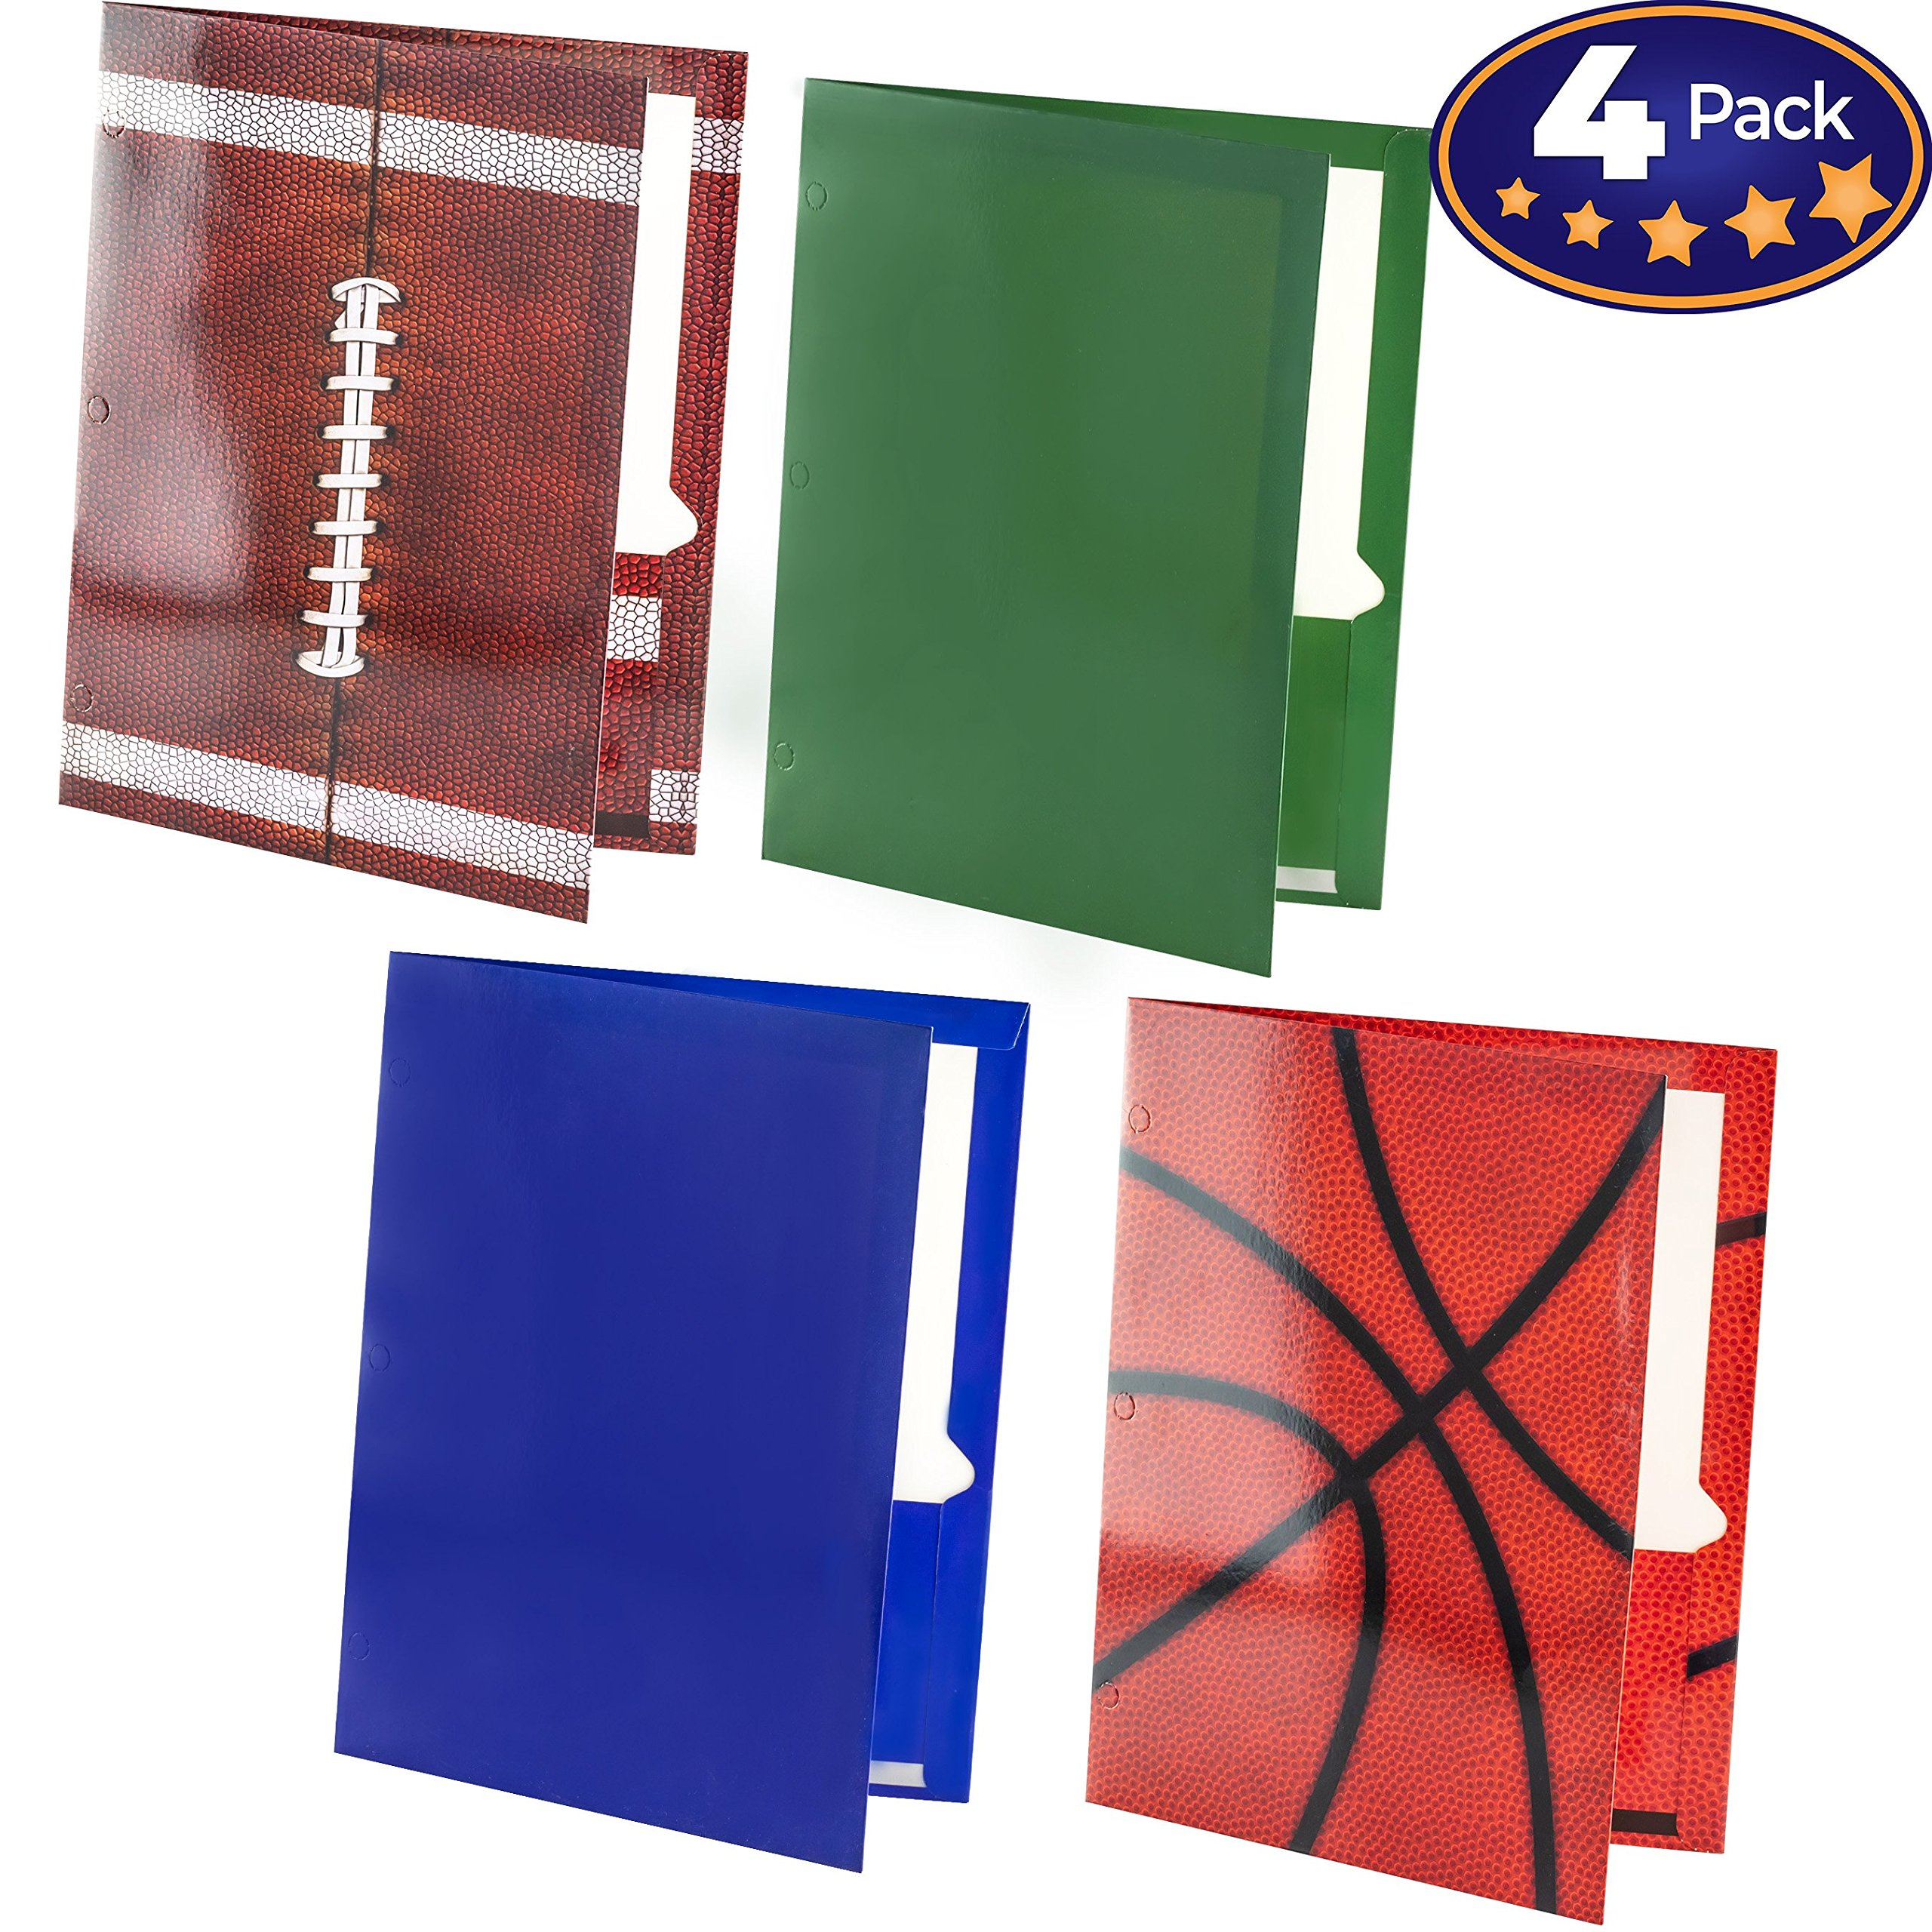 Premium 2 Pocket Laminated Folders 4 Pack. Our 3 Hole, 12-1/2 x 9-1/2 inch Portfolios Fit Easily Into Any Students Standard School Trapper Keepers Or Binders. Essential Supply for Homework and Notes